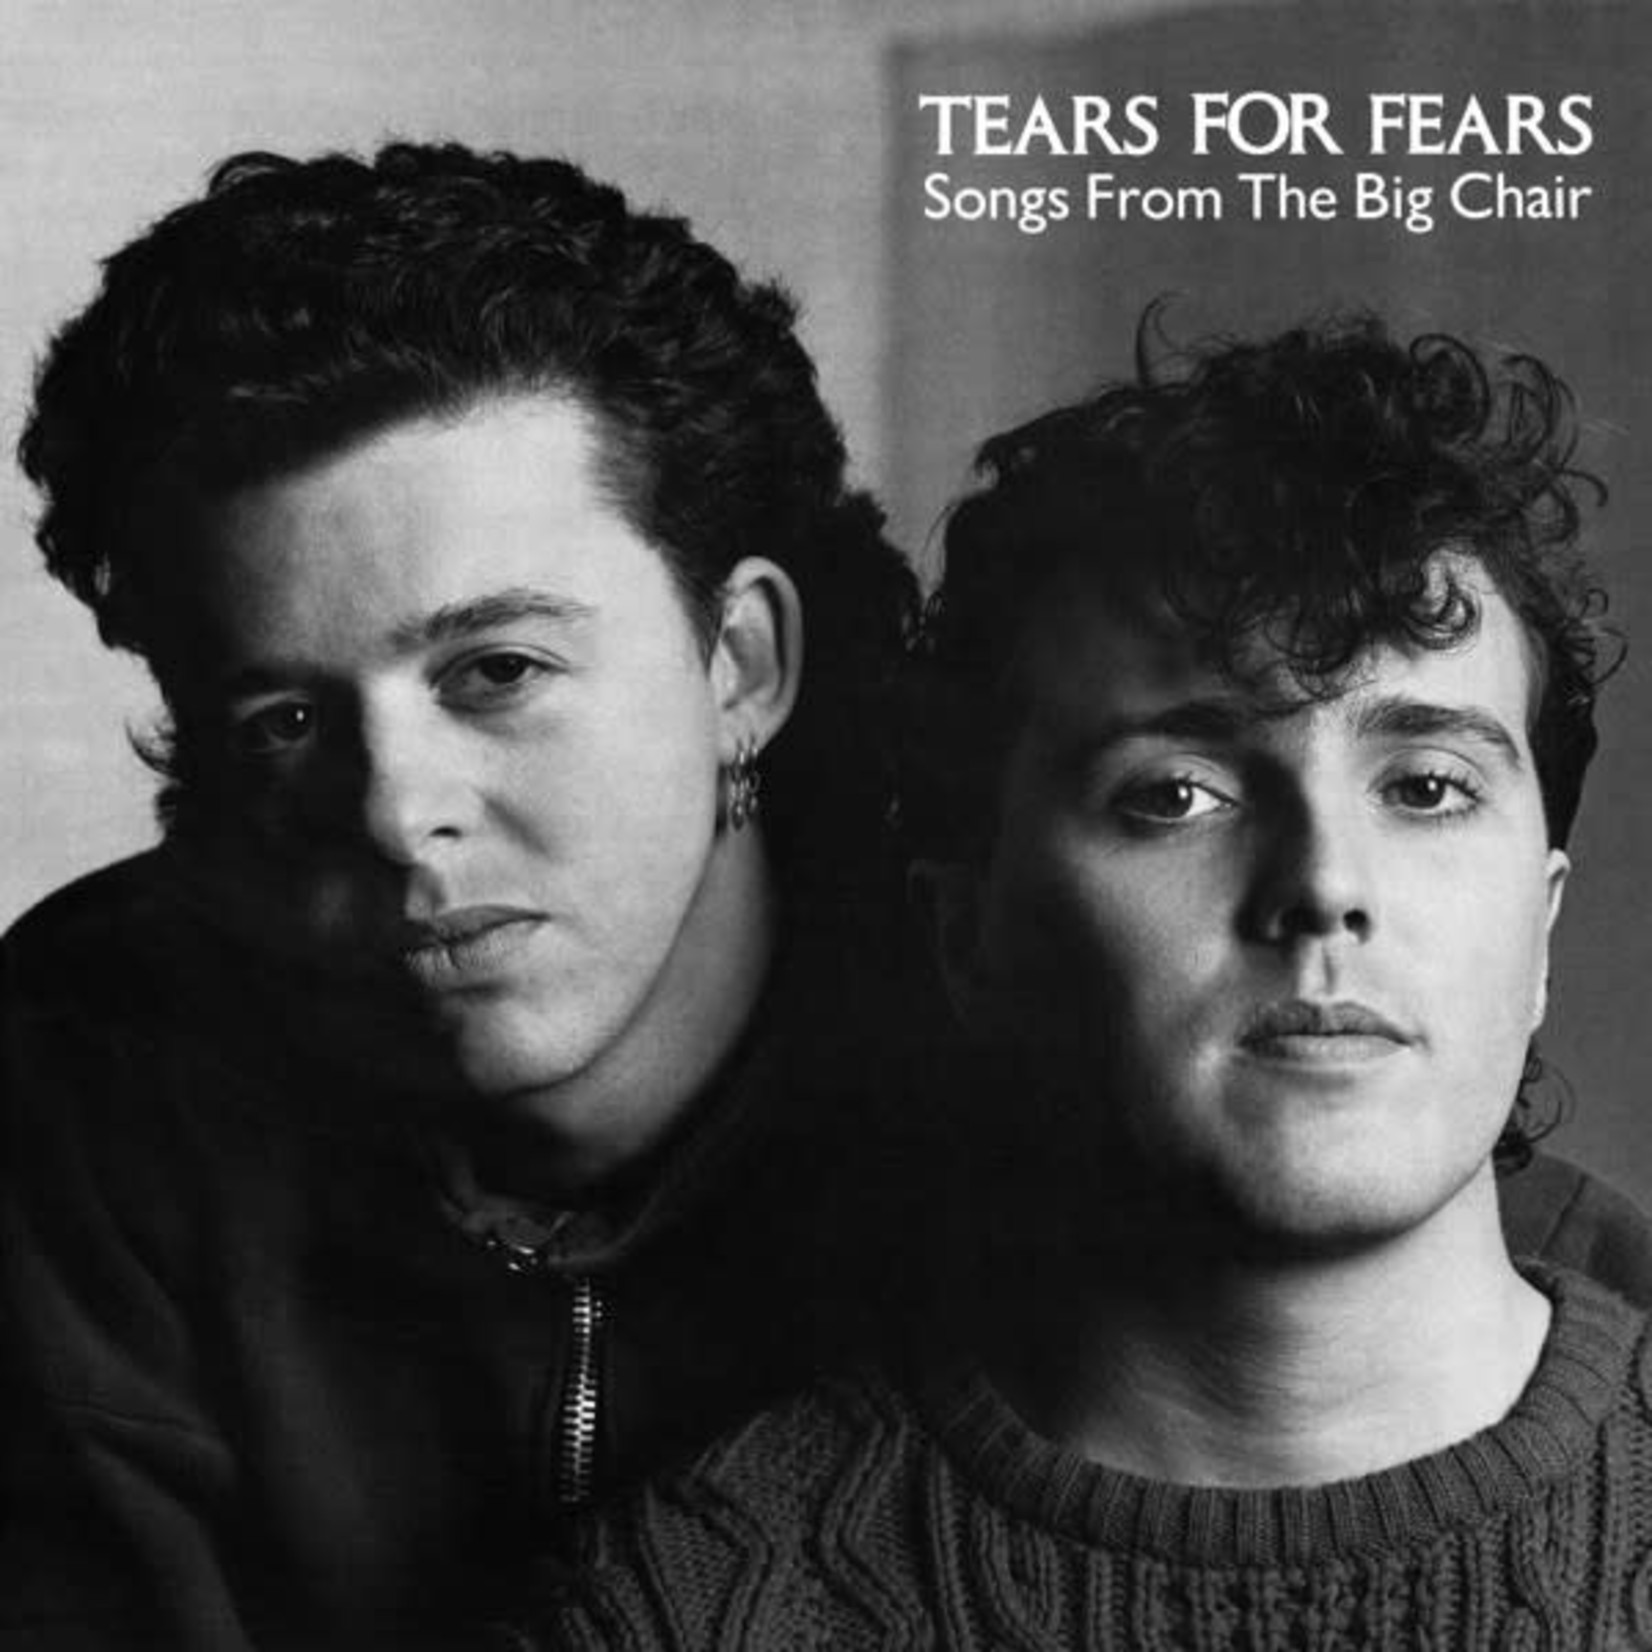 [Vintage] Tears for Fears: Songs From the Big Chair